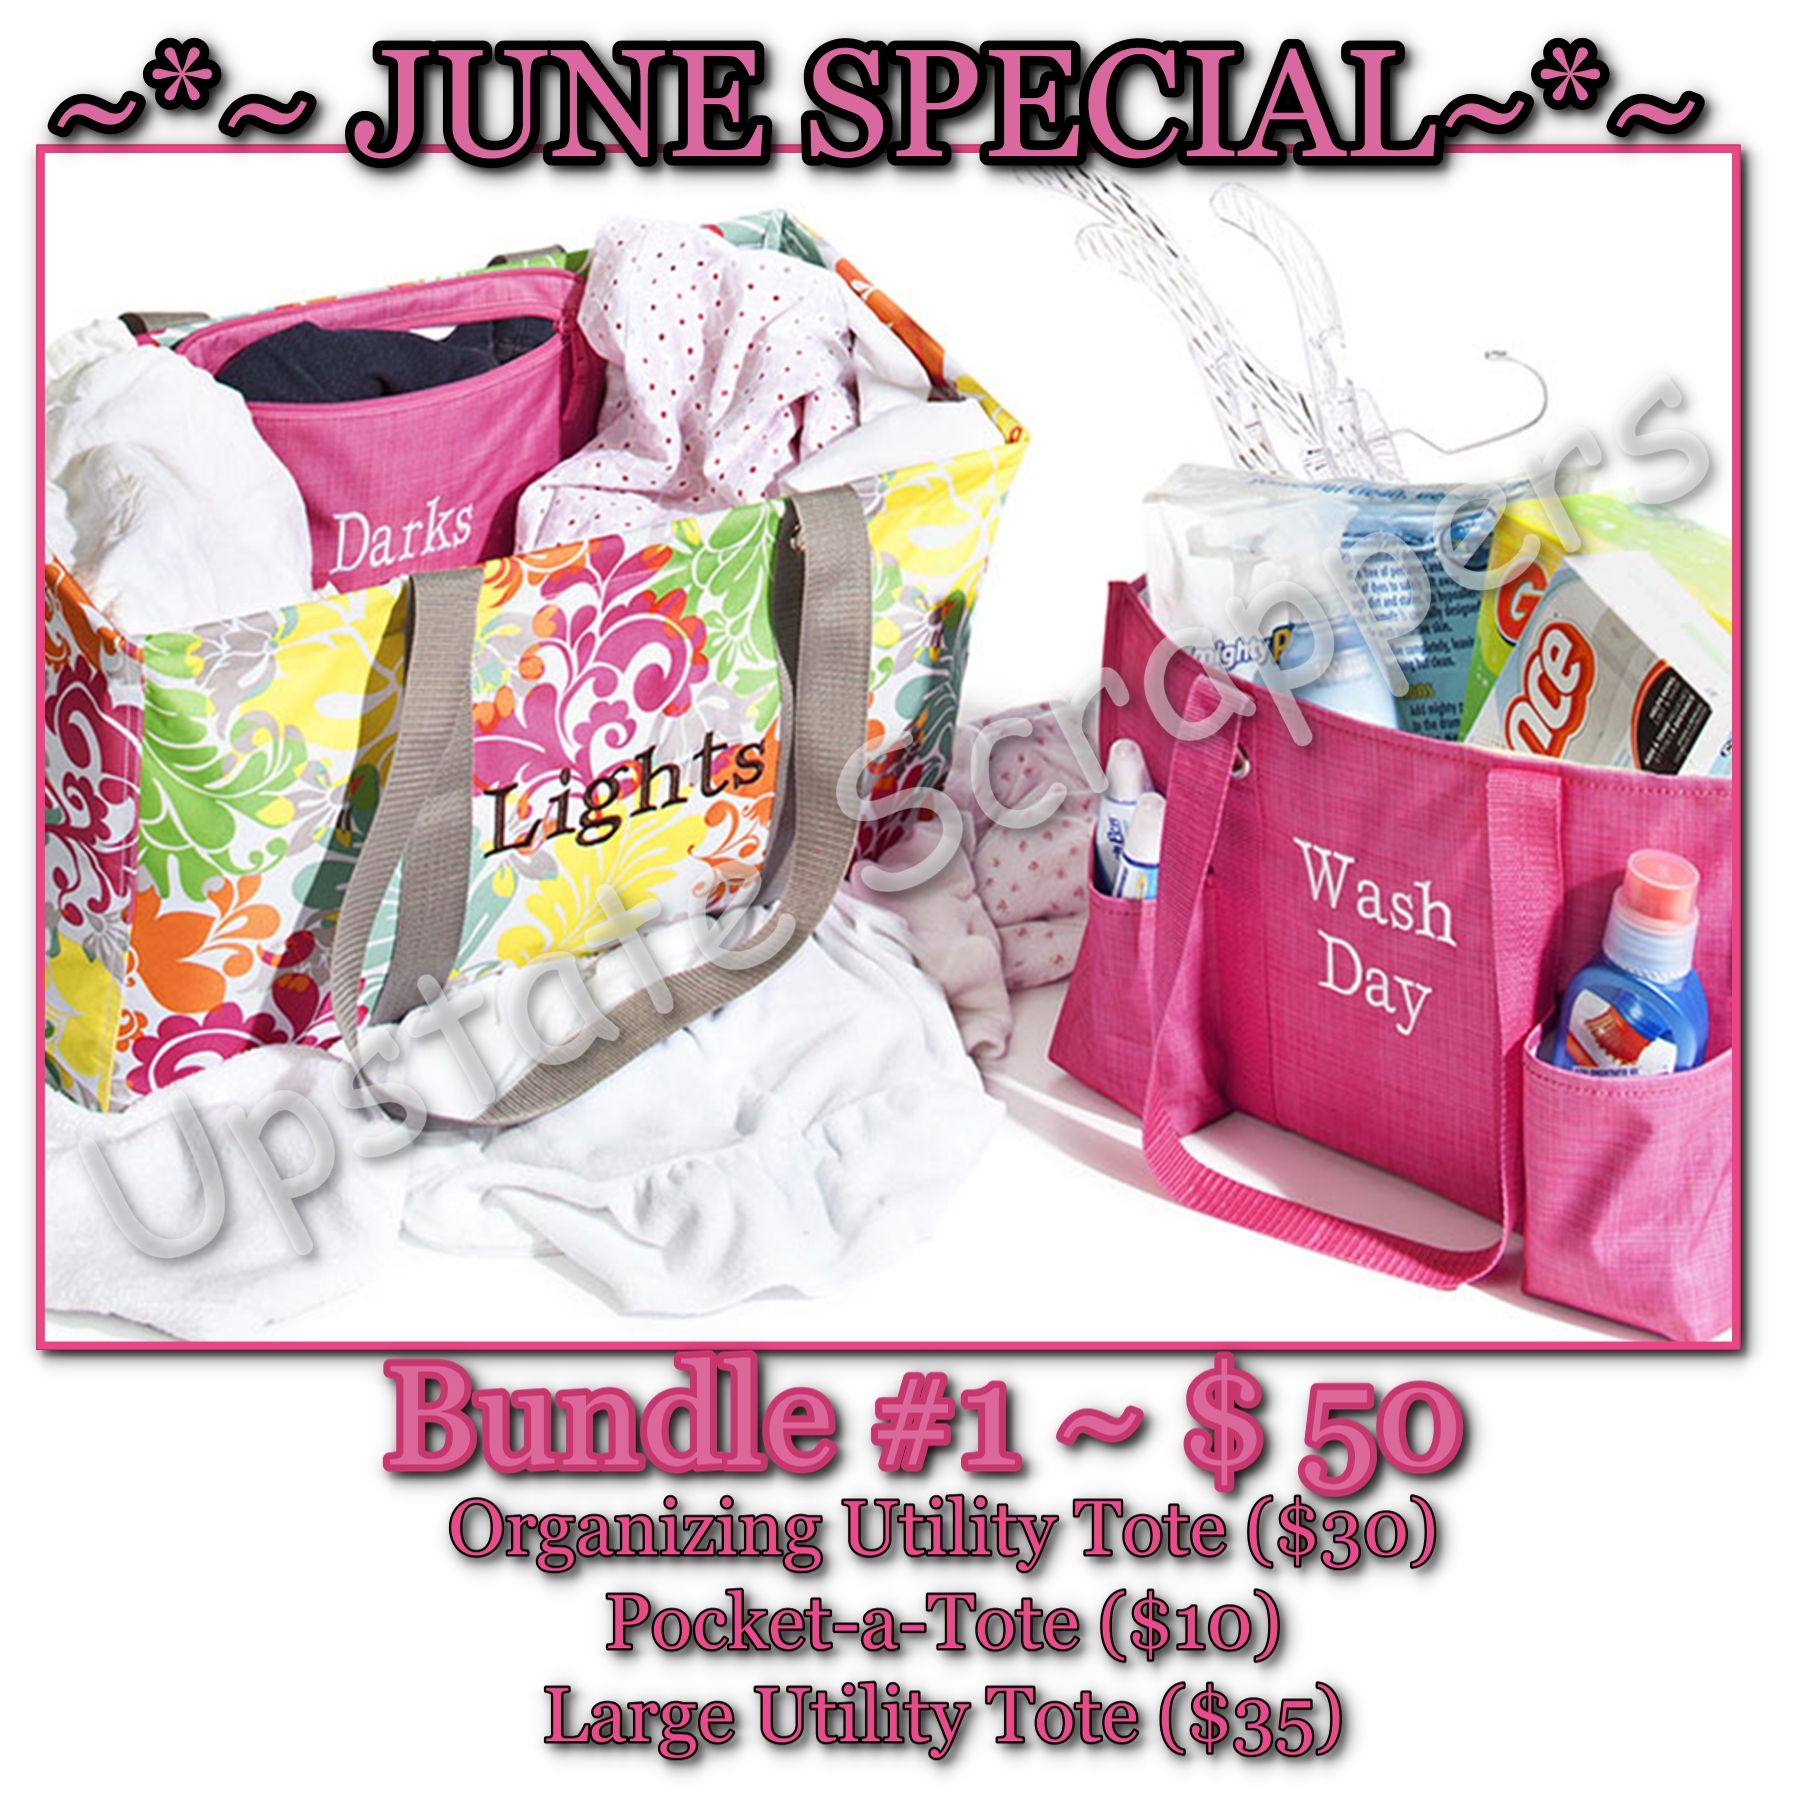 Large Utility Tote $10 - THIS MONTH ONLY!